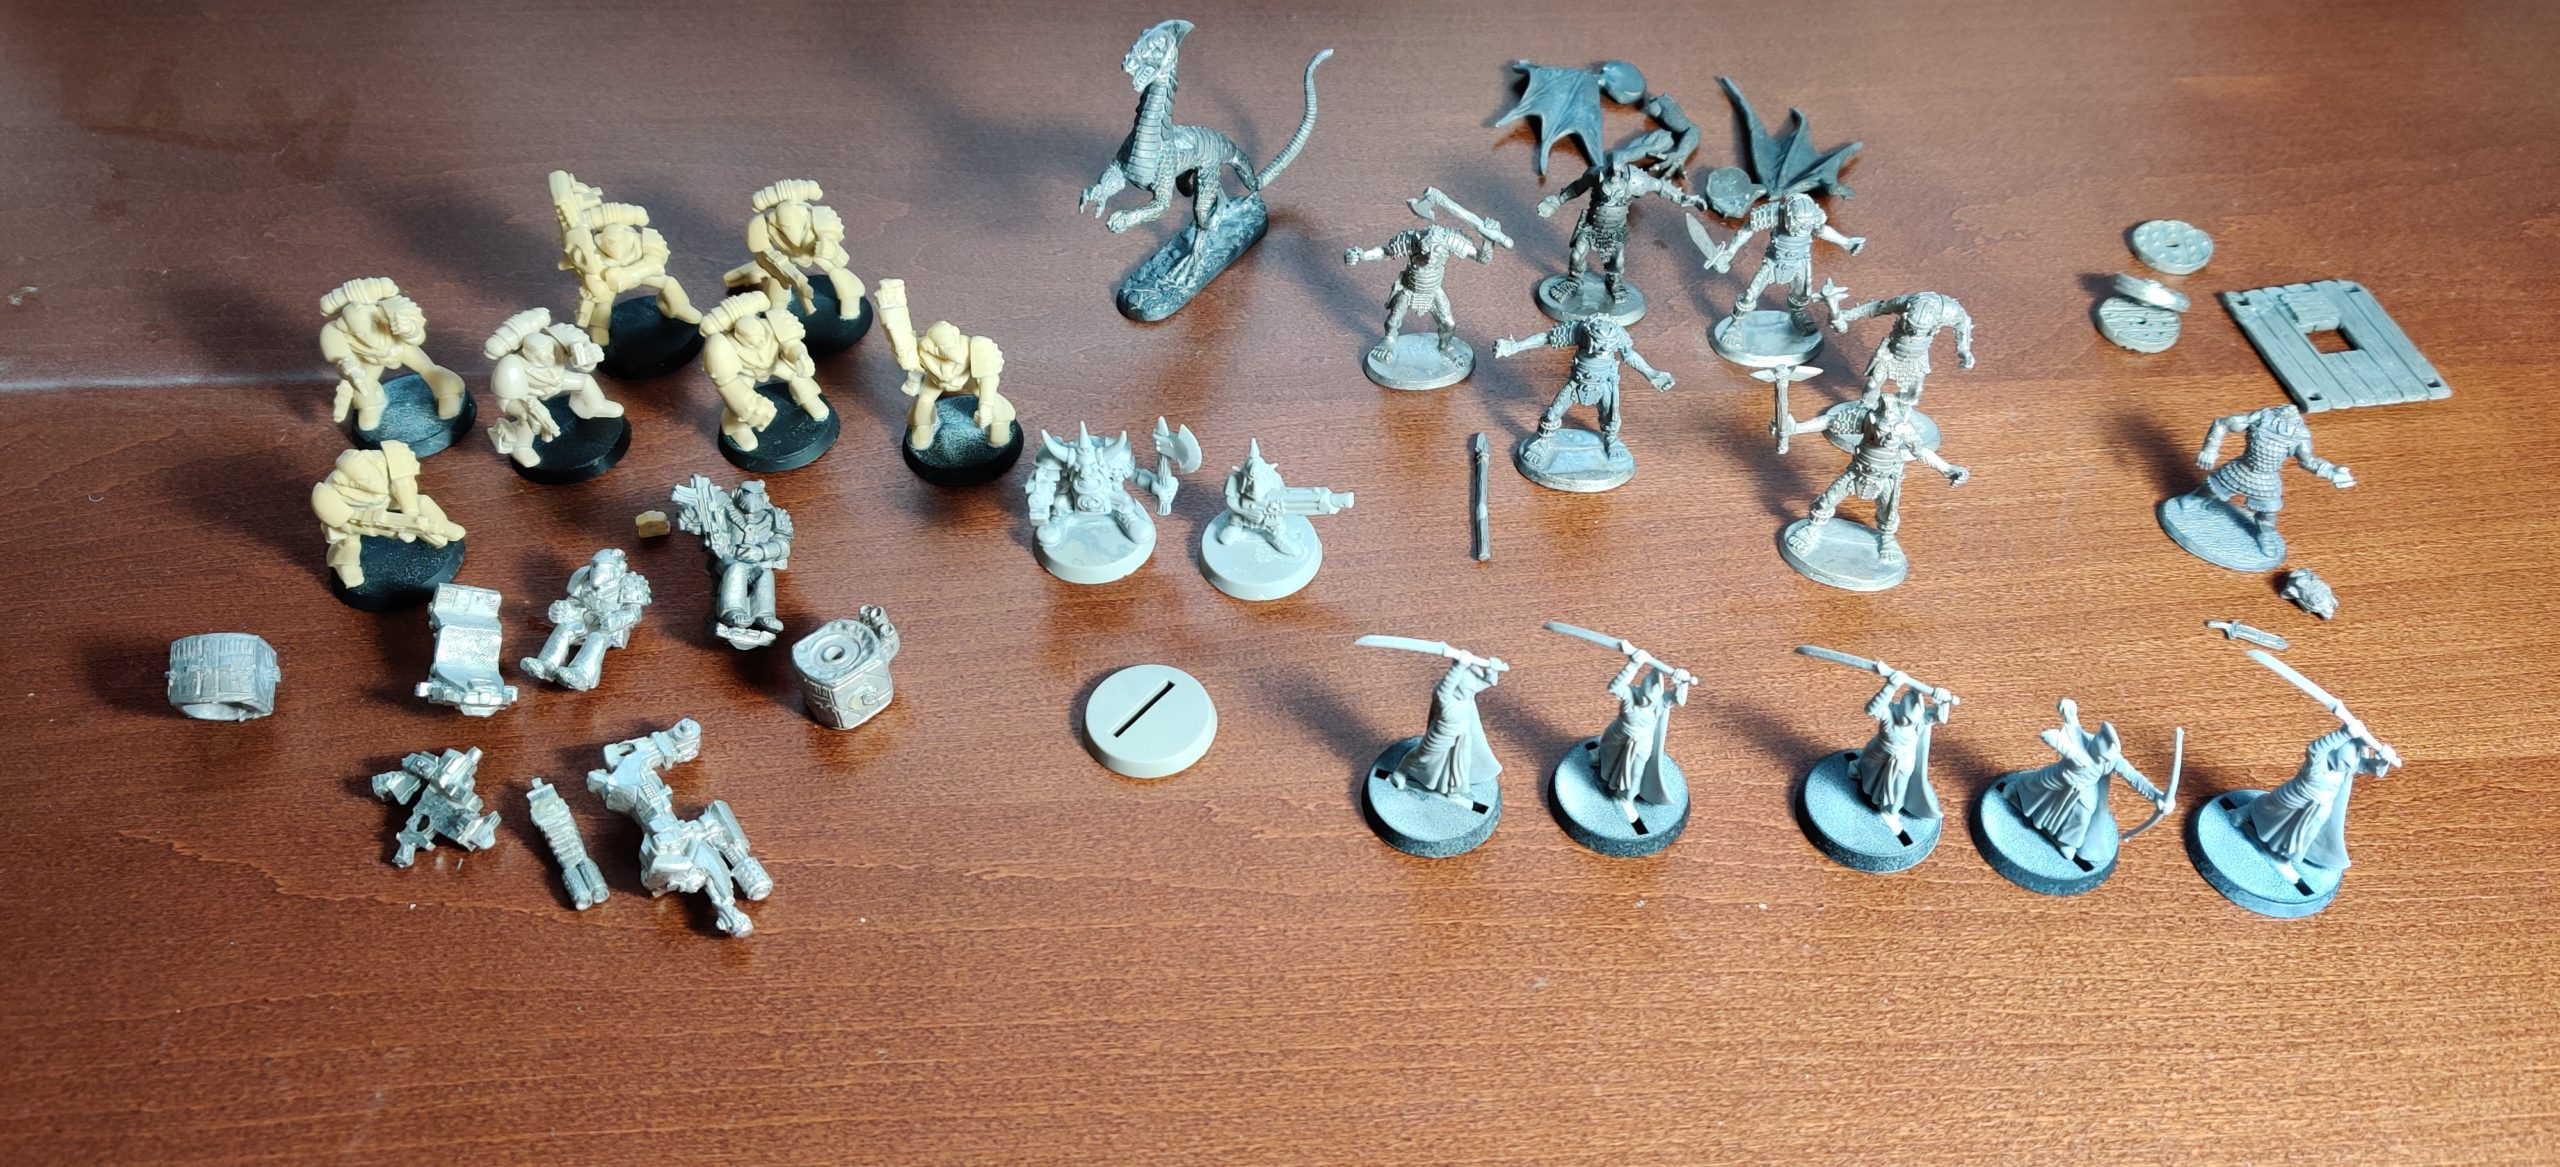 All the stripped miniatures.